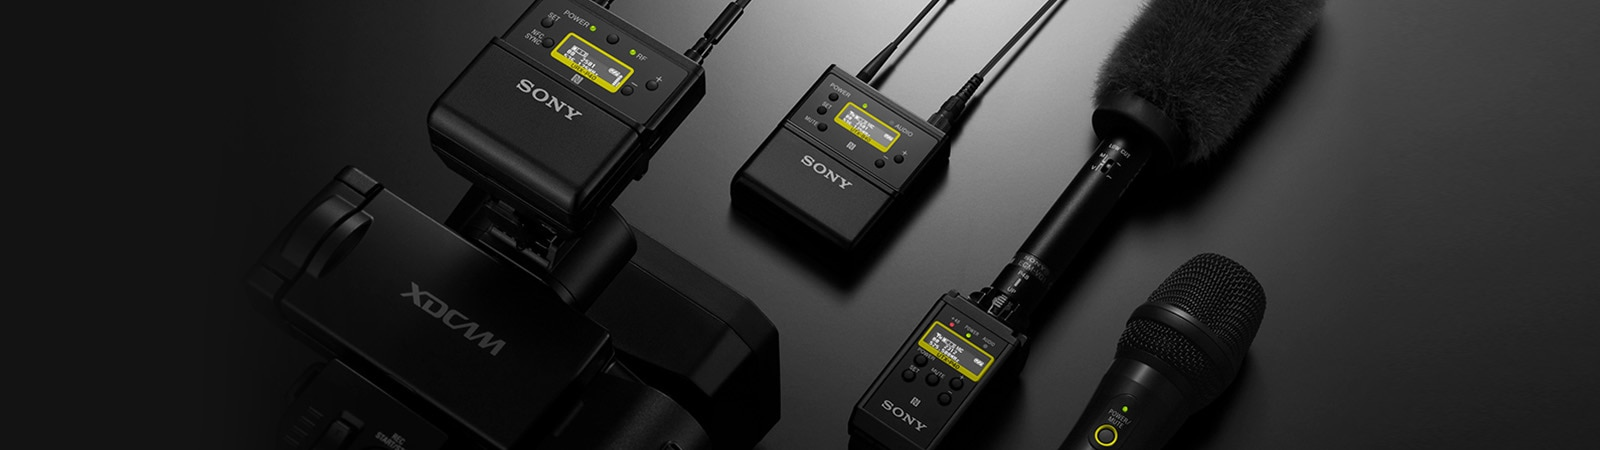 UWP-D Series receivers and Sony microphones